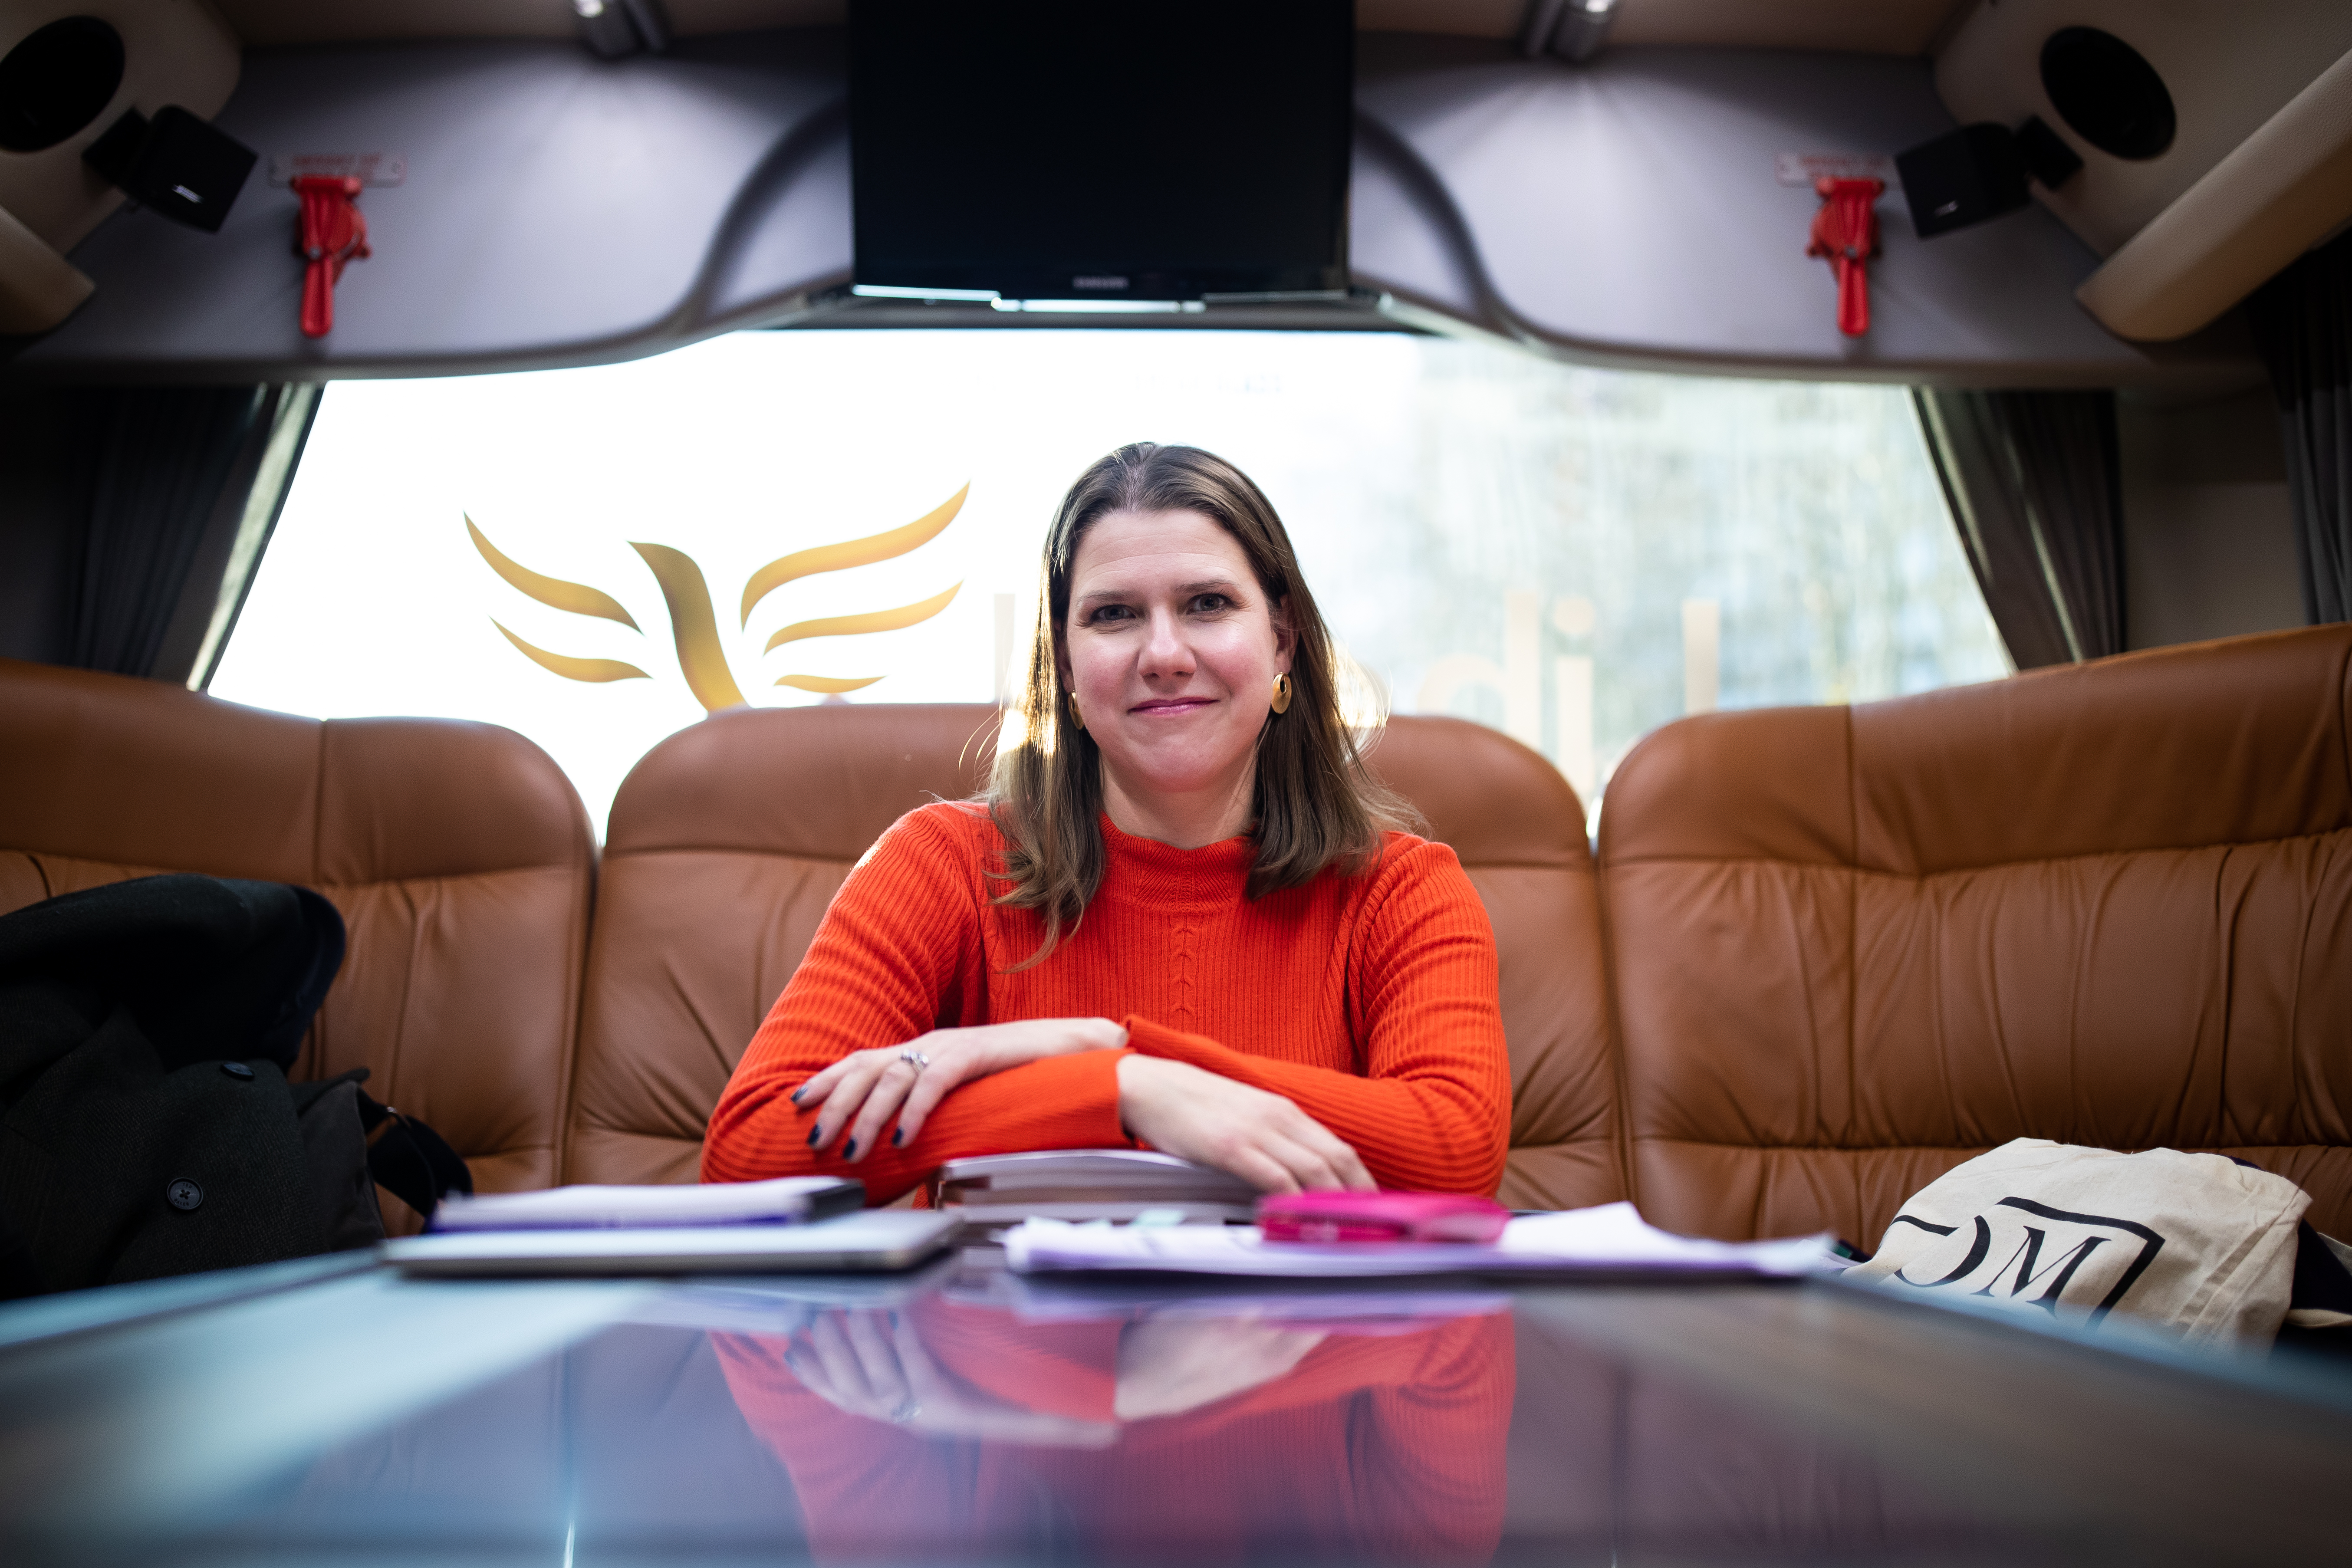 Liberal Democrat Leader Jo Swinson on the election campaign bus on route to Chelmsford to discuss the impact of Brexit and Trump trade deal with farmers, whilst on the General Election campaign trail.